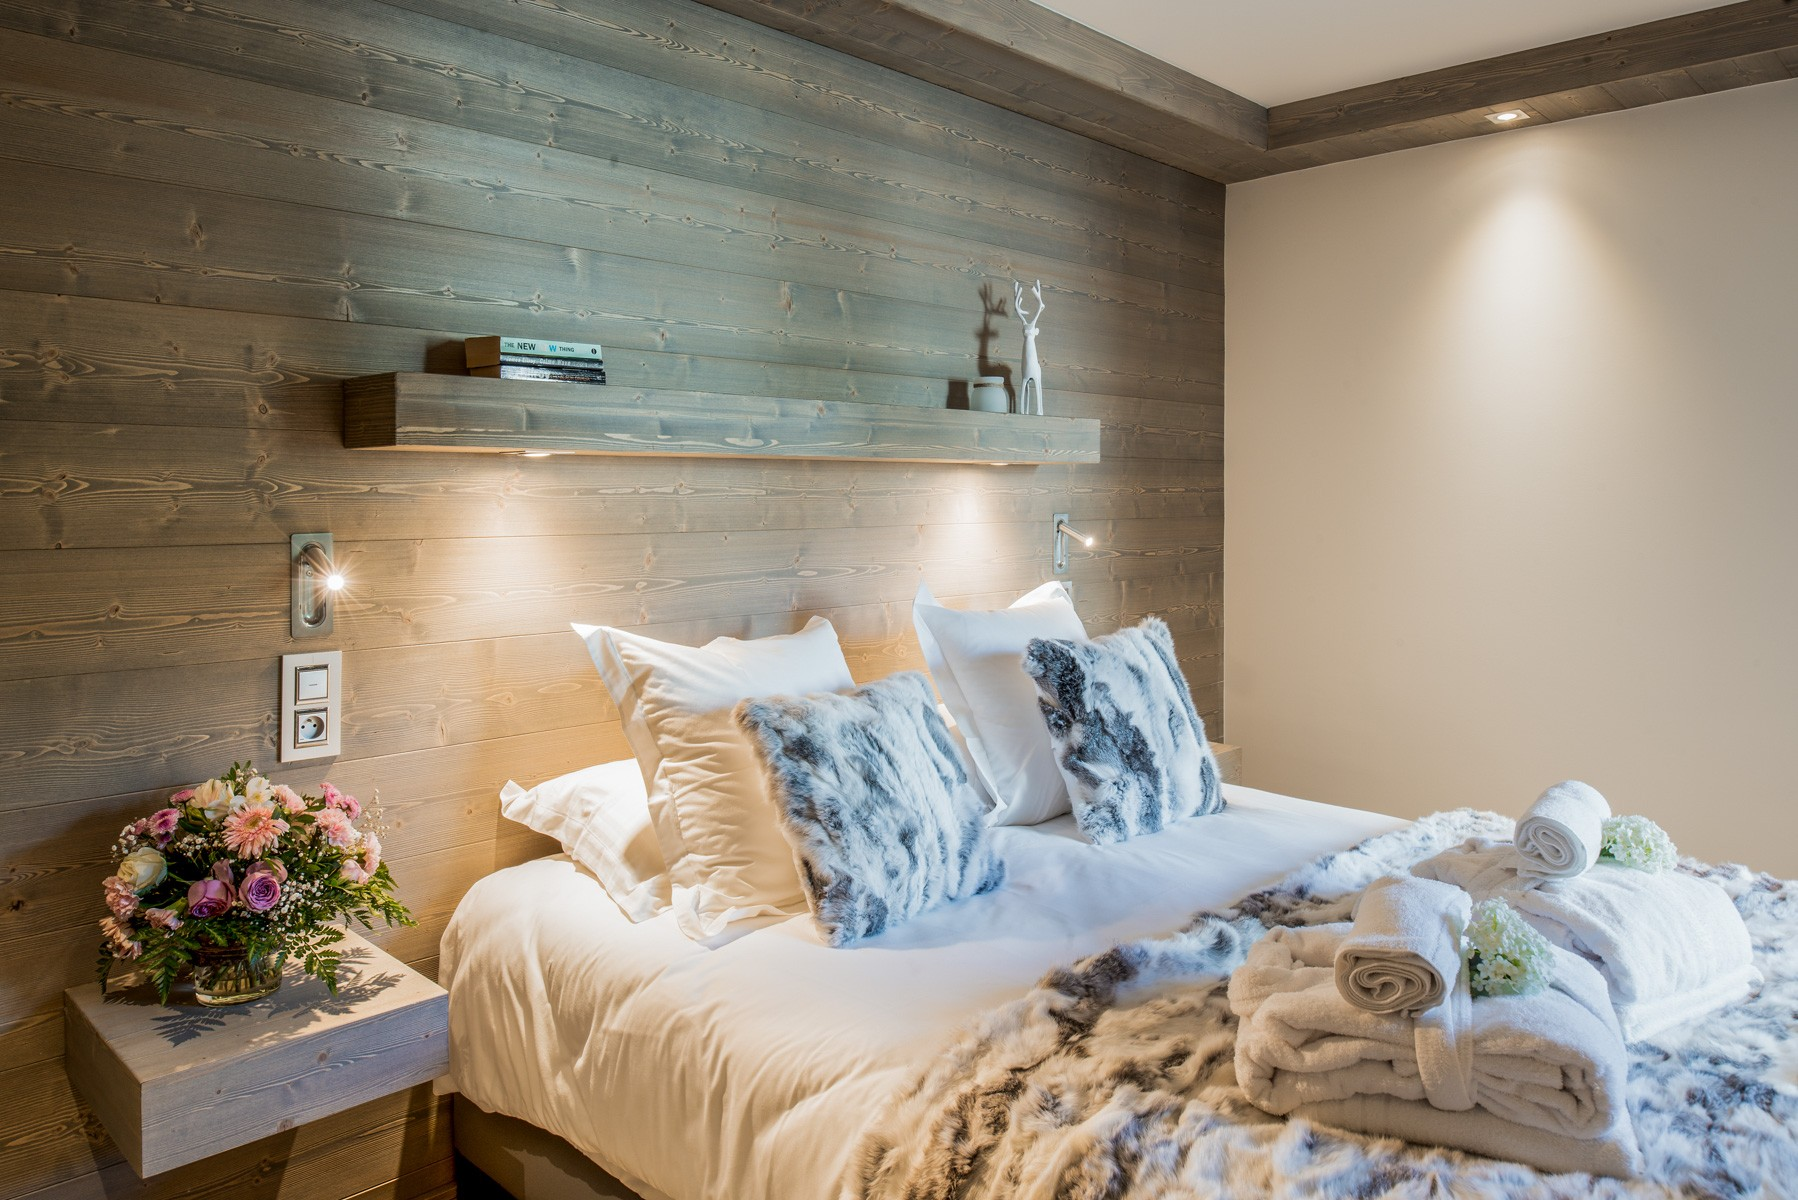 Courchevel 1650 Location Appartement Luxe Amurile Chambre 5